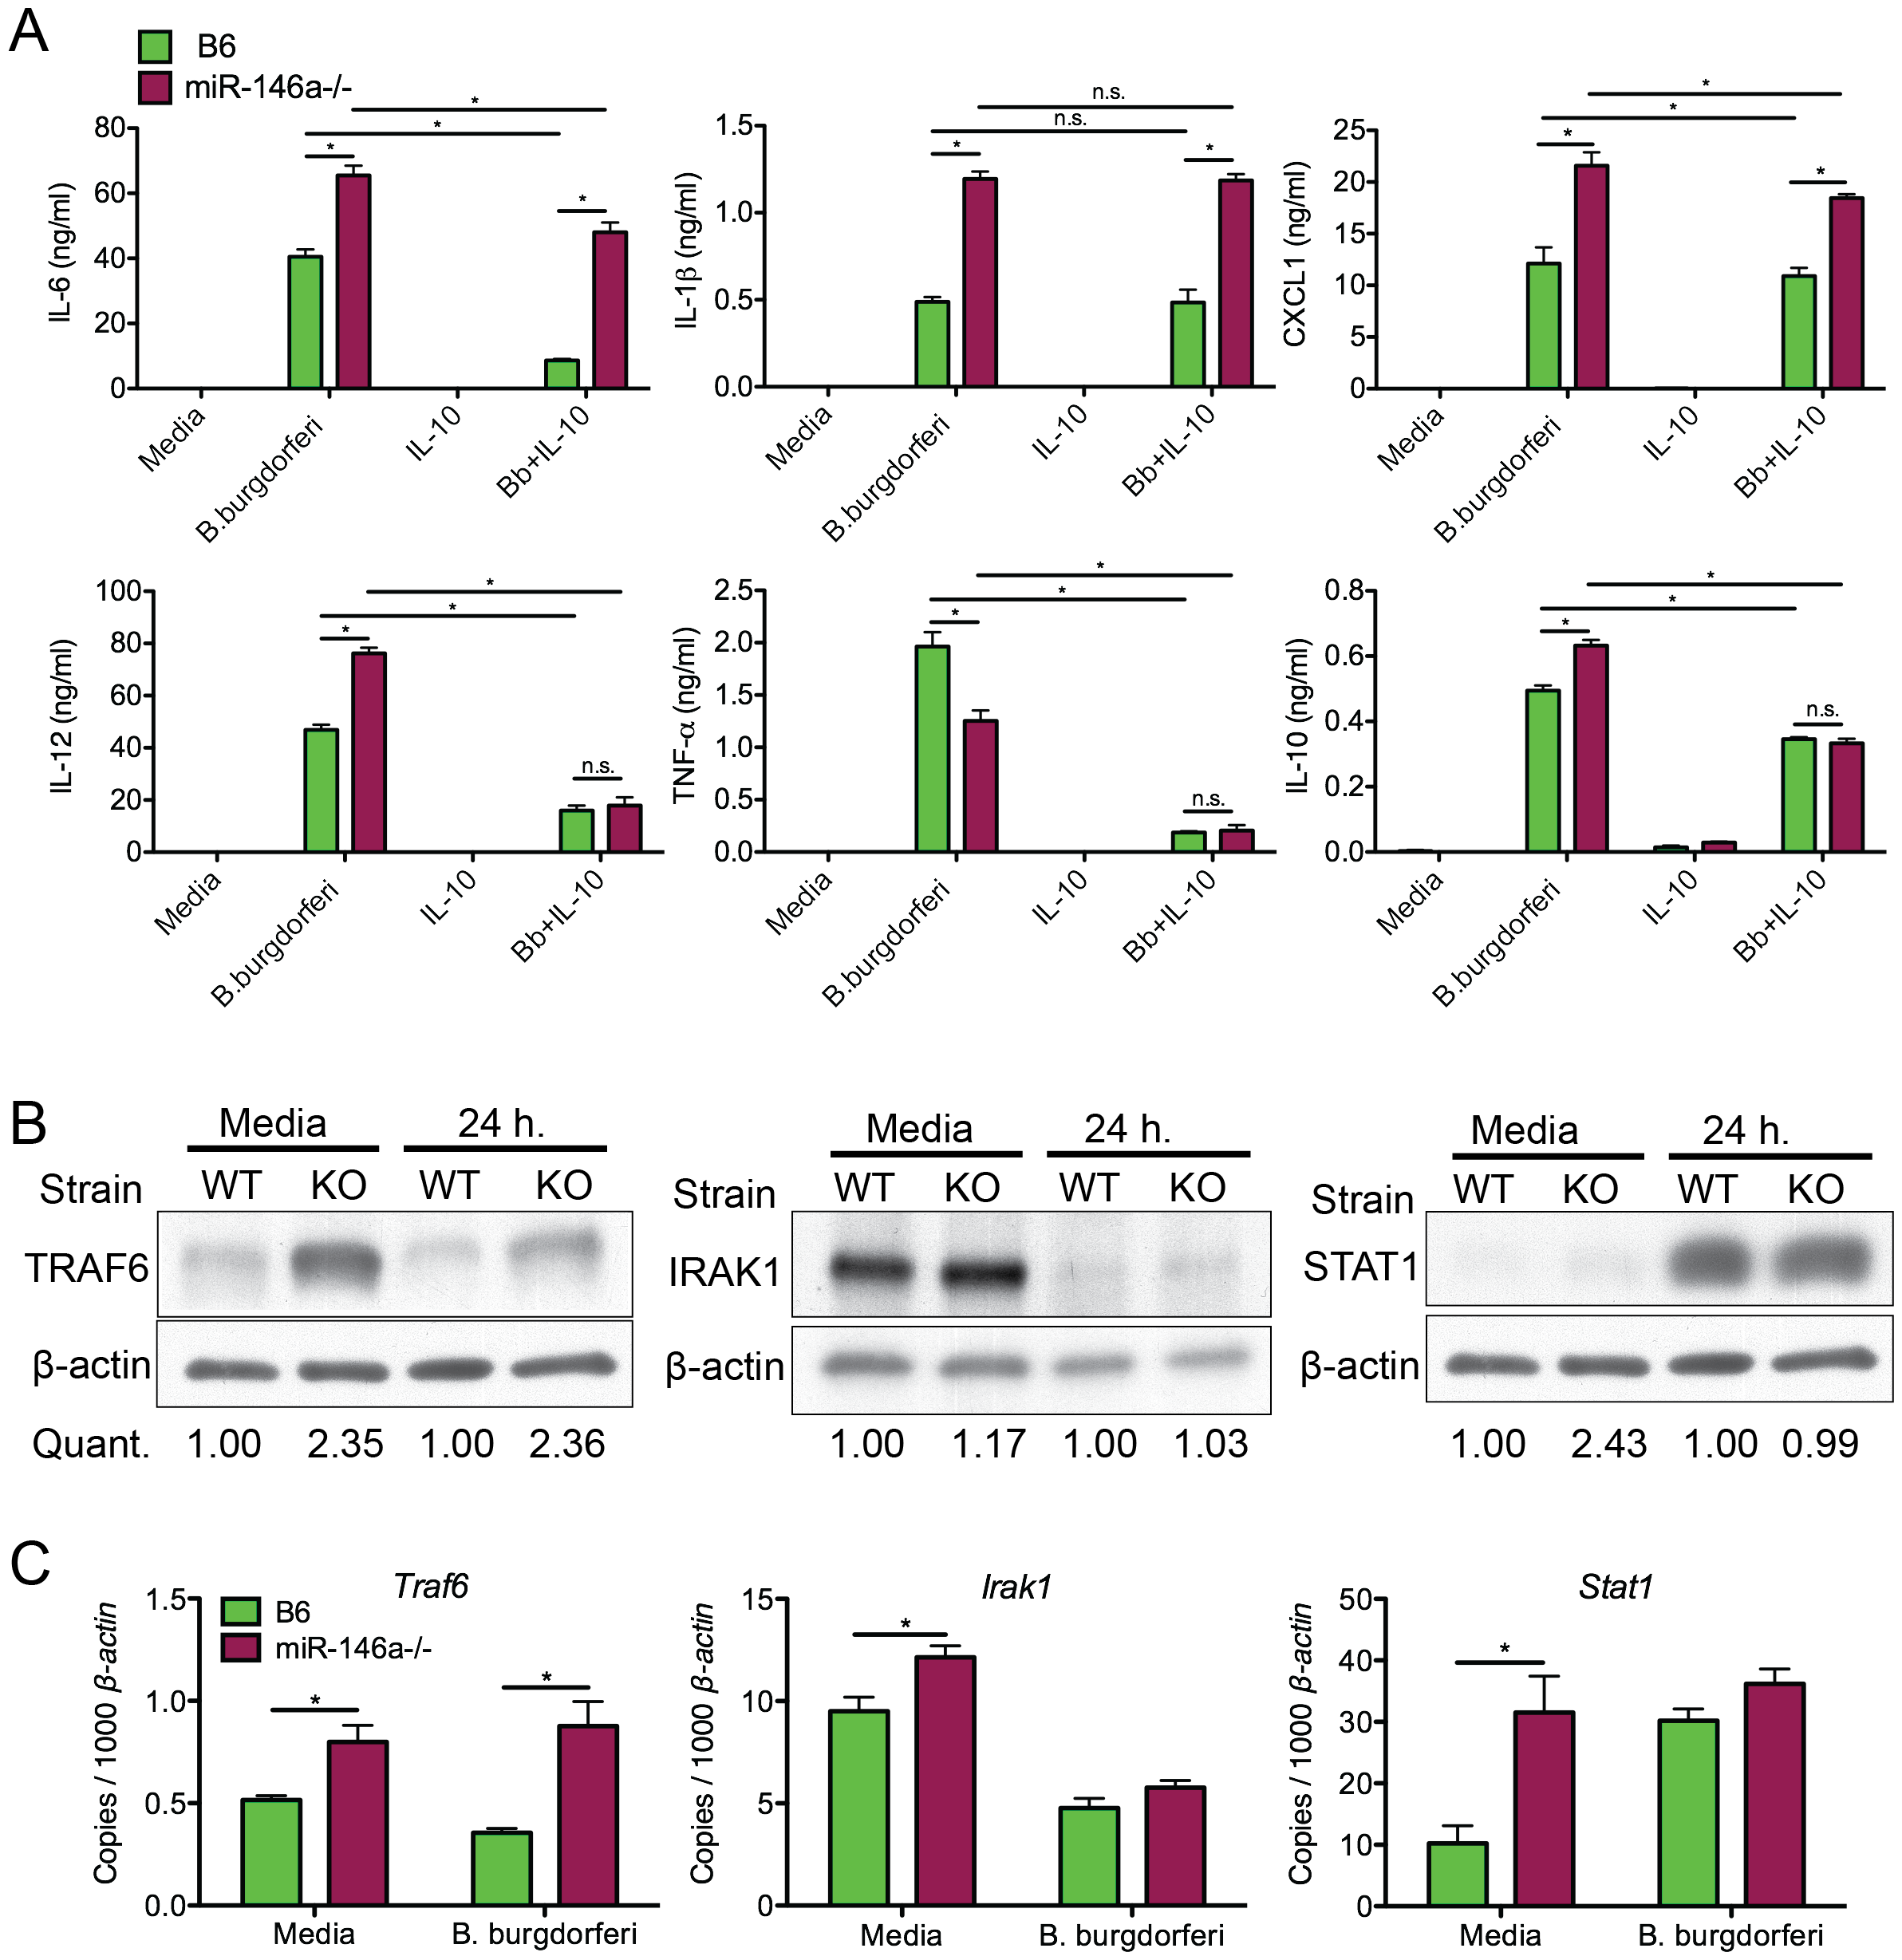 Bone marrow-derived macrophages from B6 miR-146a<sup>−/−</sup> mice are hyper-responsive to <i>B. burgdorferi</i> and have elevated levels of TRAF6.